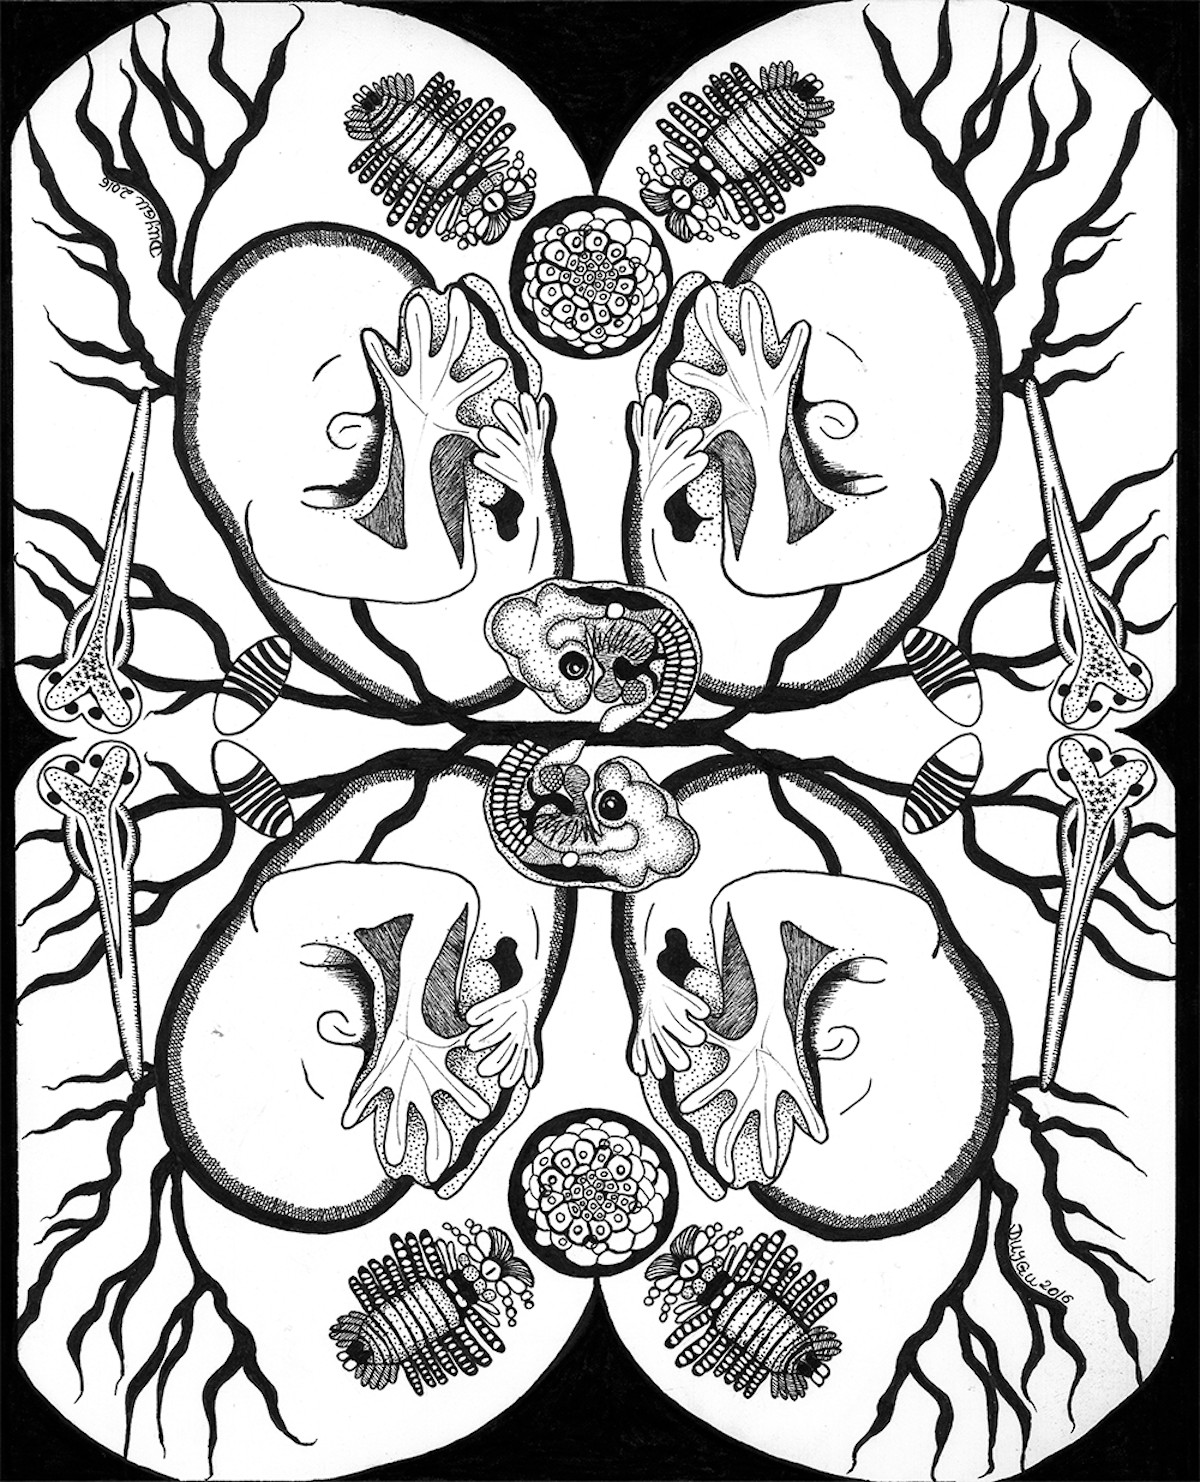 Black and white illustration of developing embryos and fetuses. The image is reflected across vertical and horizontal axes.